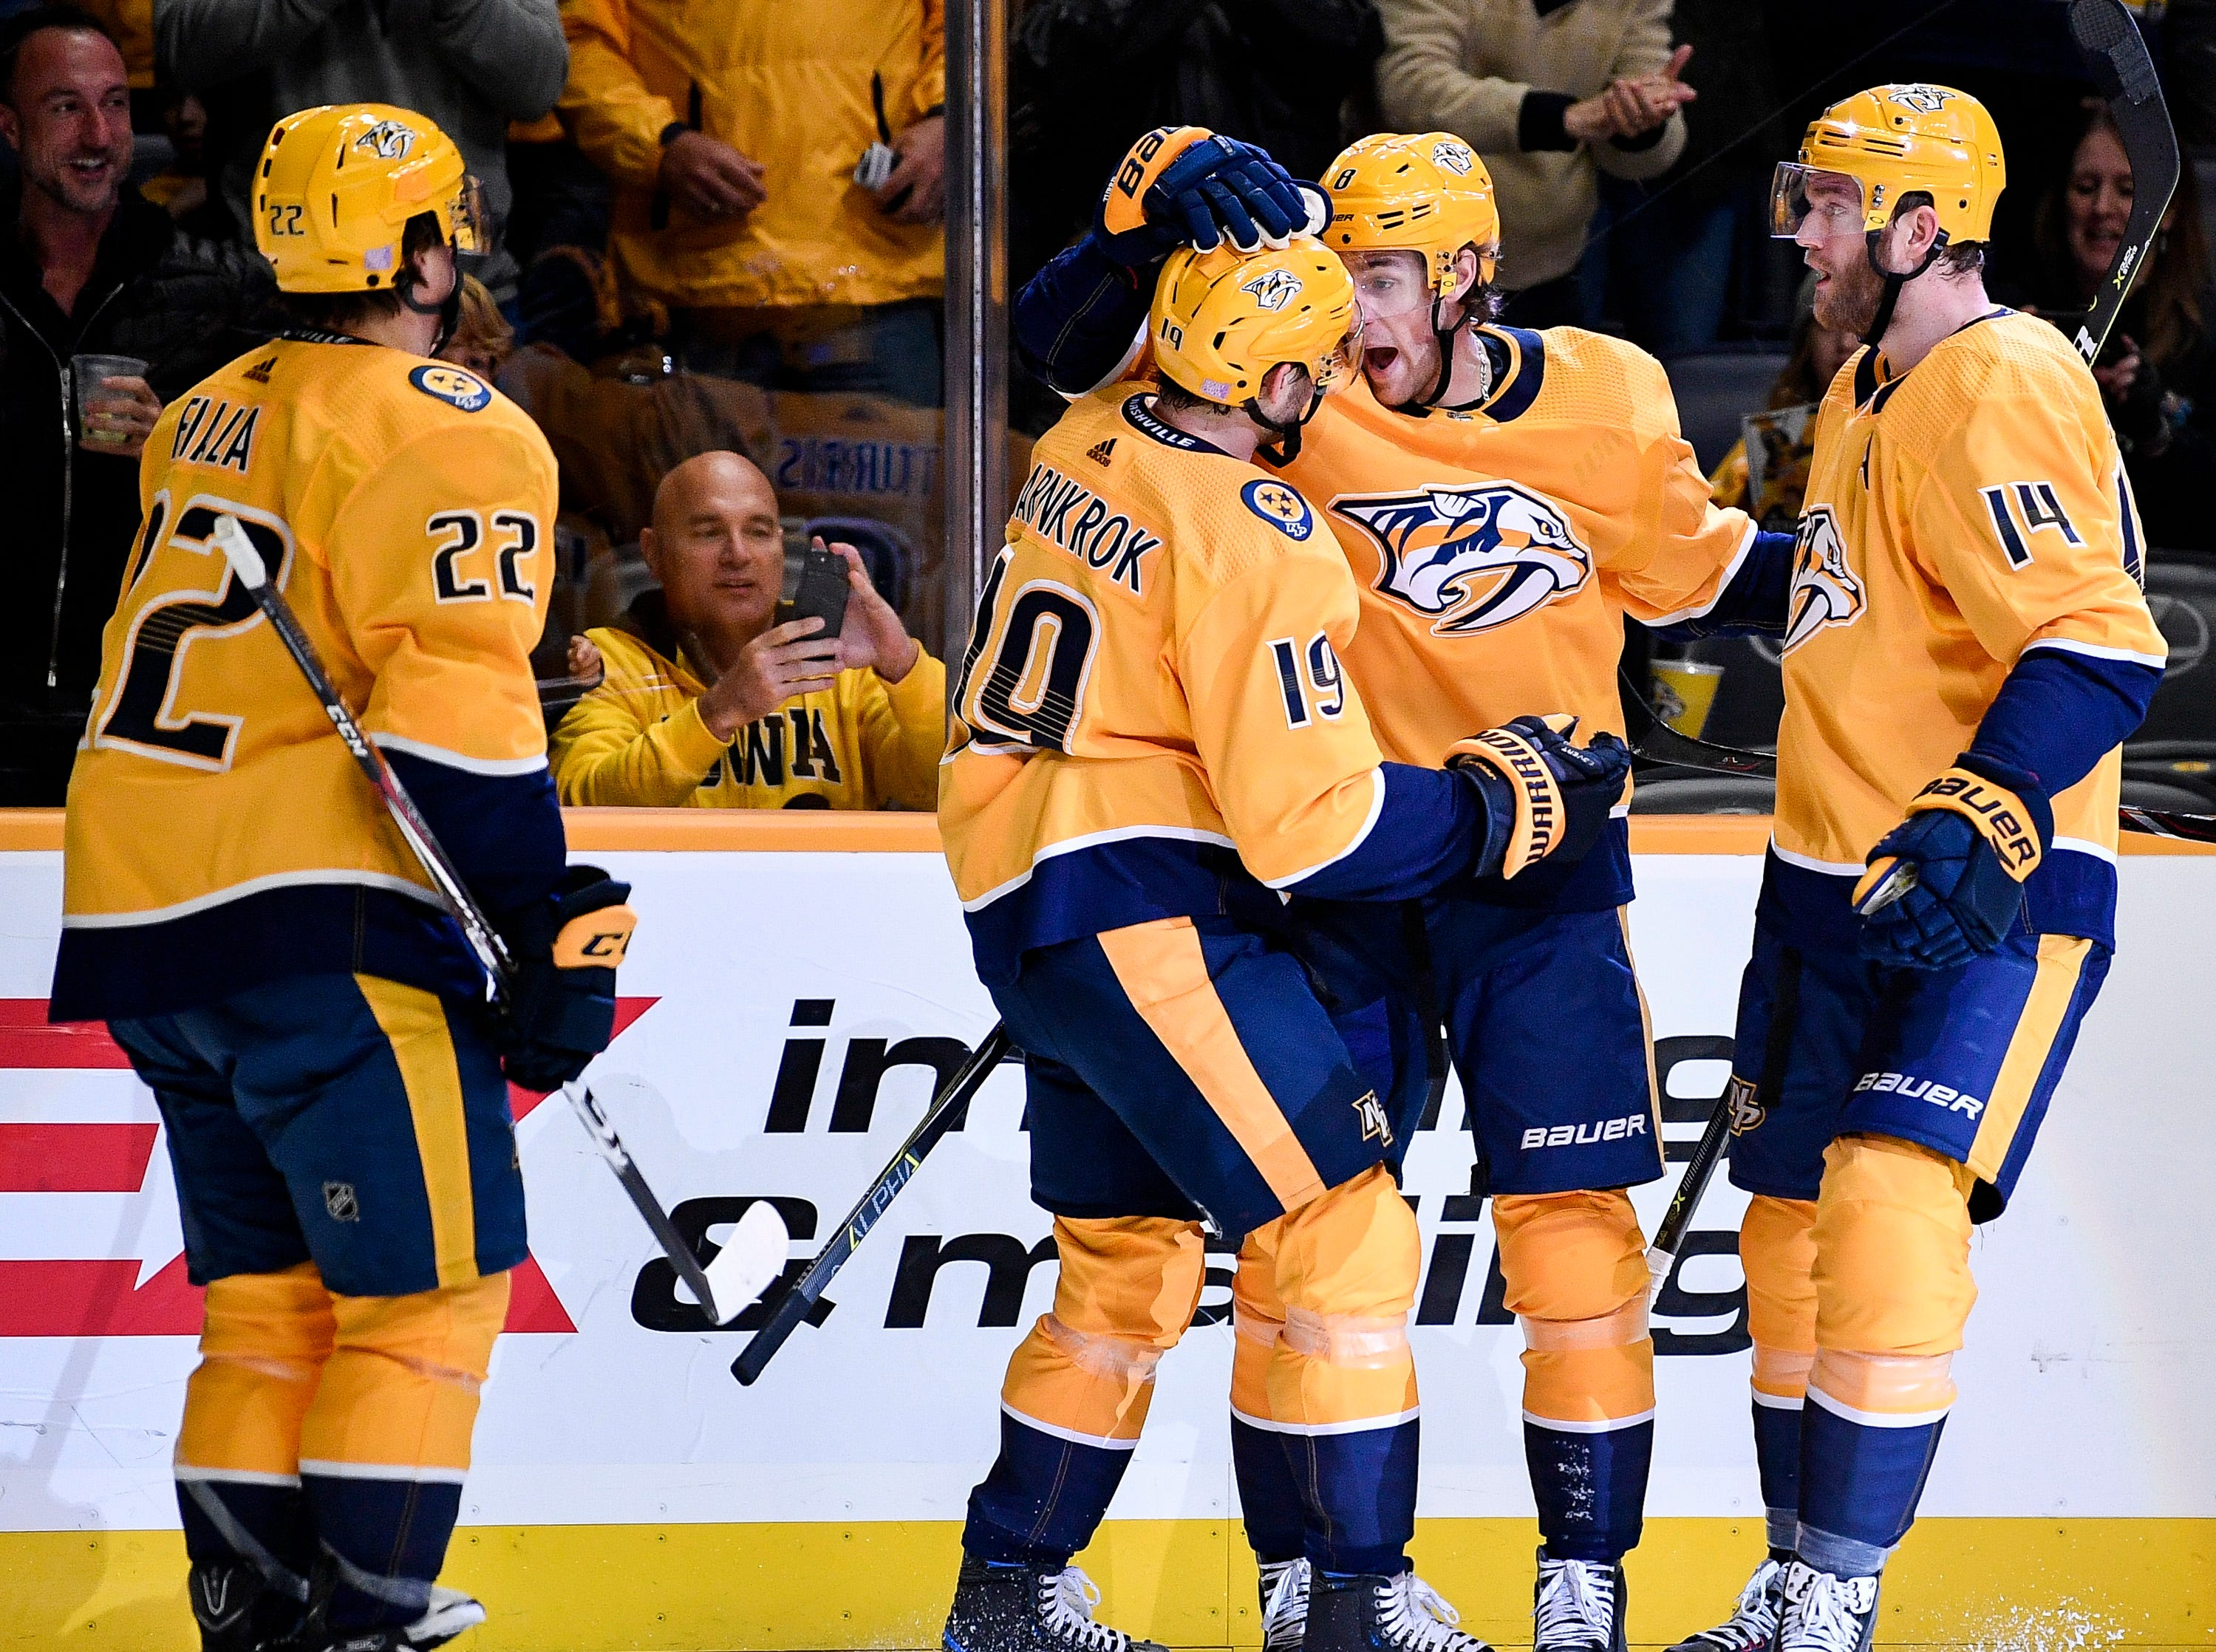 Nashville Predators center Kyle Turris (8) reacts after scoring against the Tampa Bay Lightning during the first period at Bridgestone Arena in Nashville, Tenn., Monday, Nov. 19, 2018.